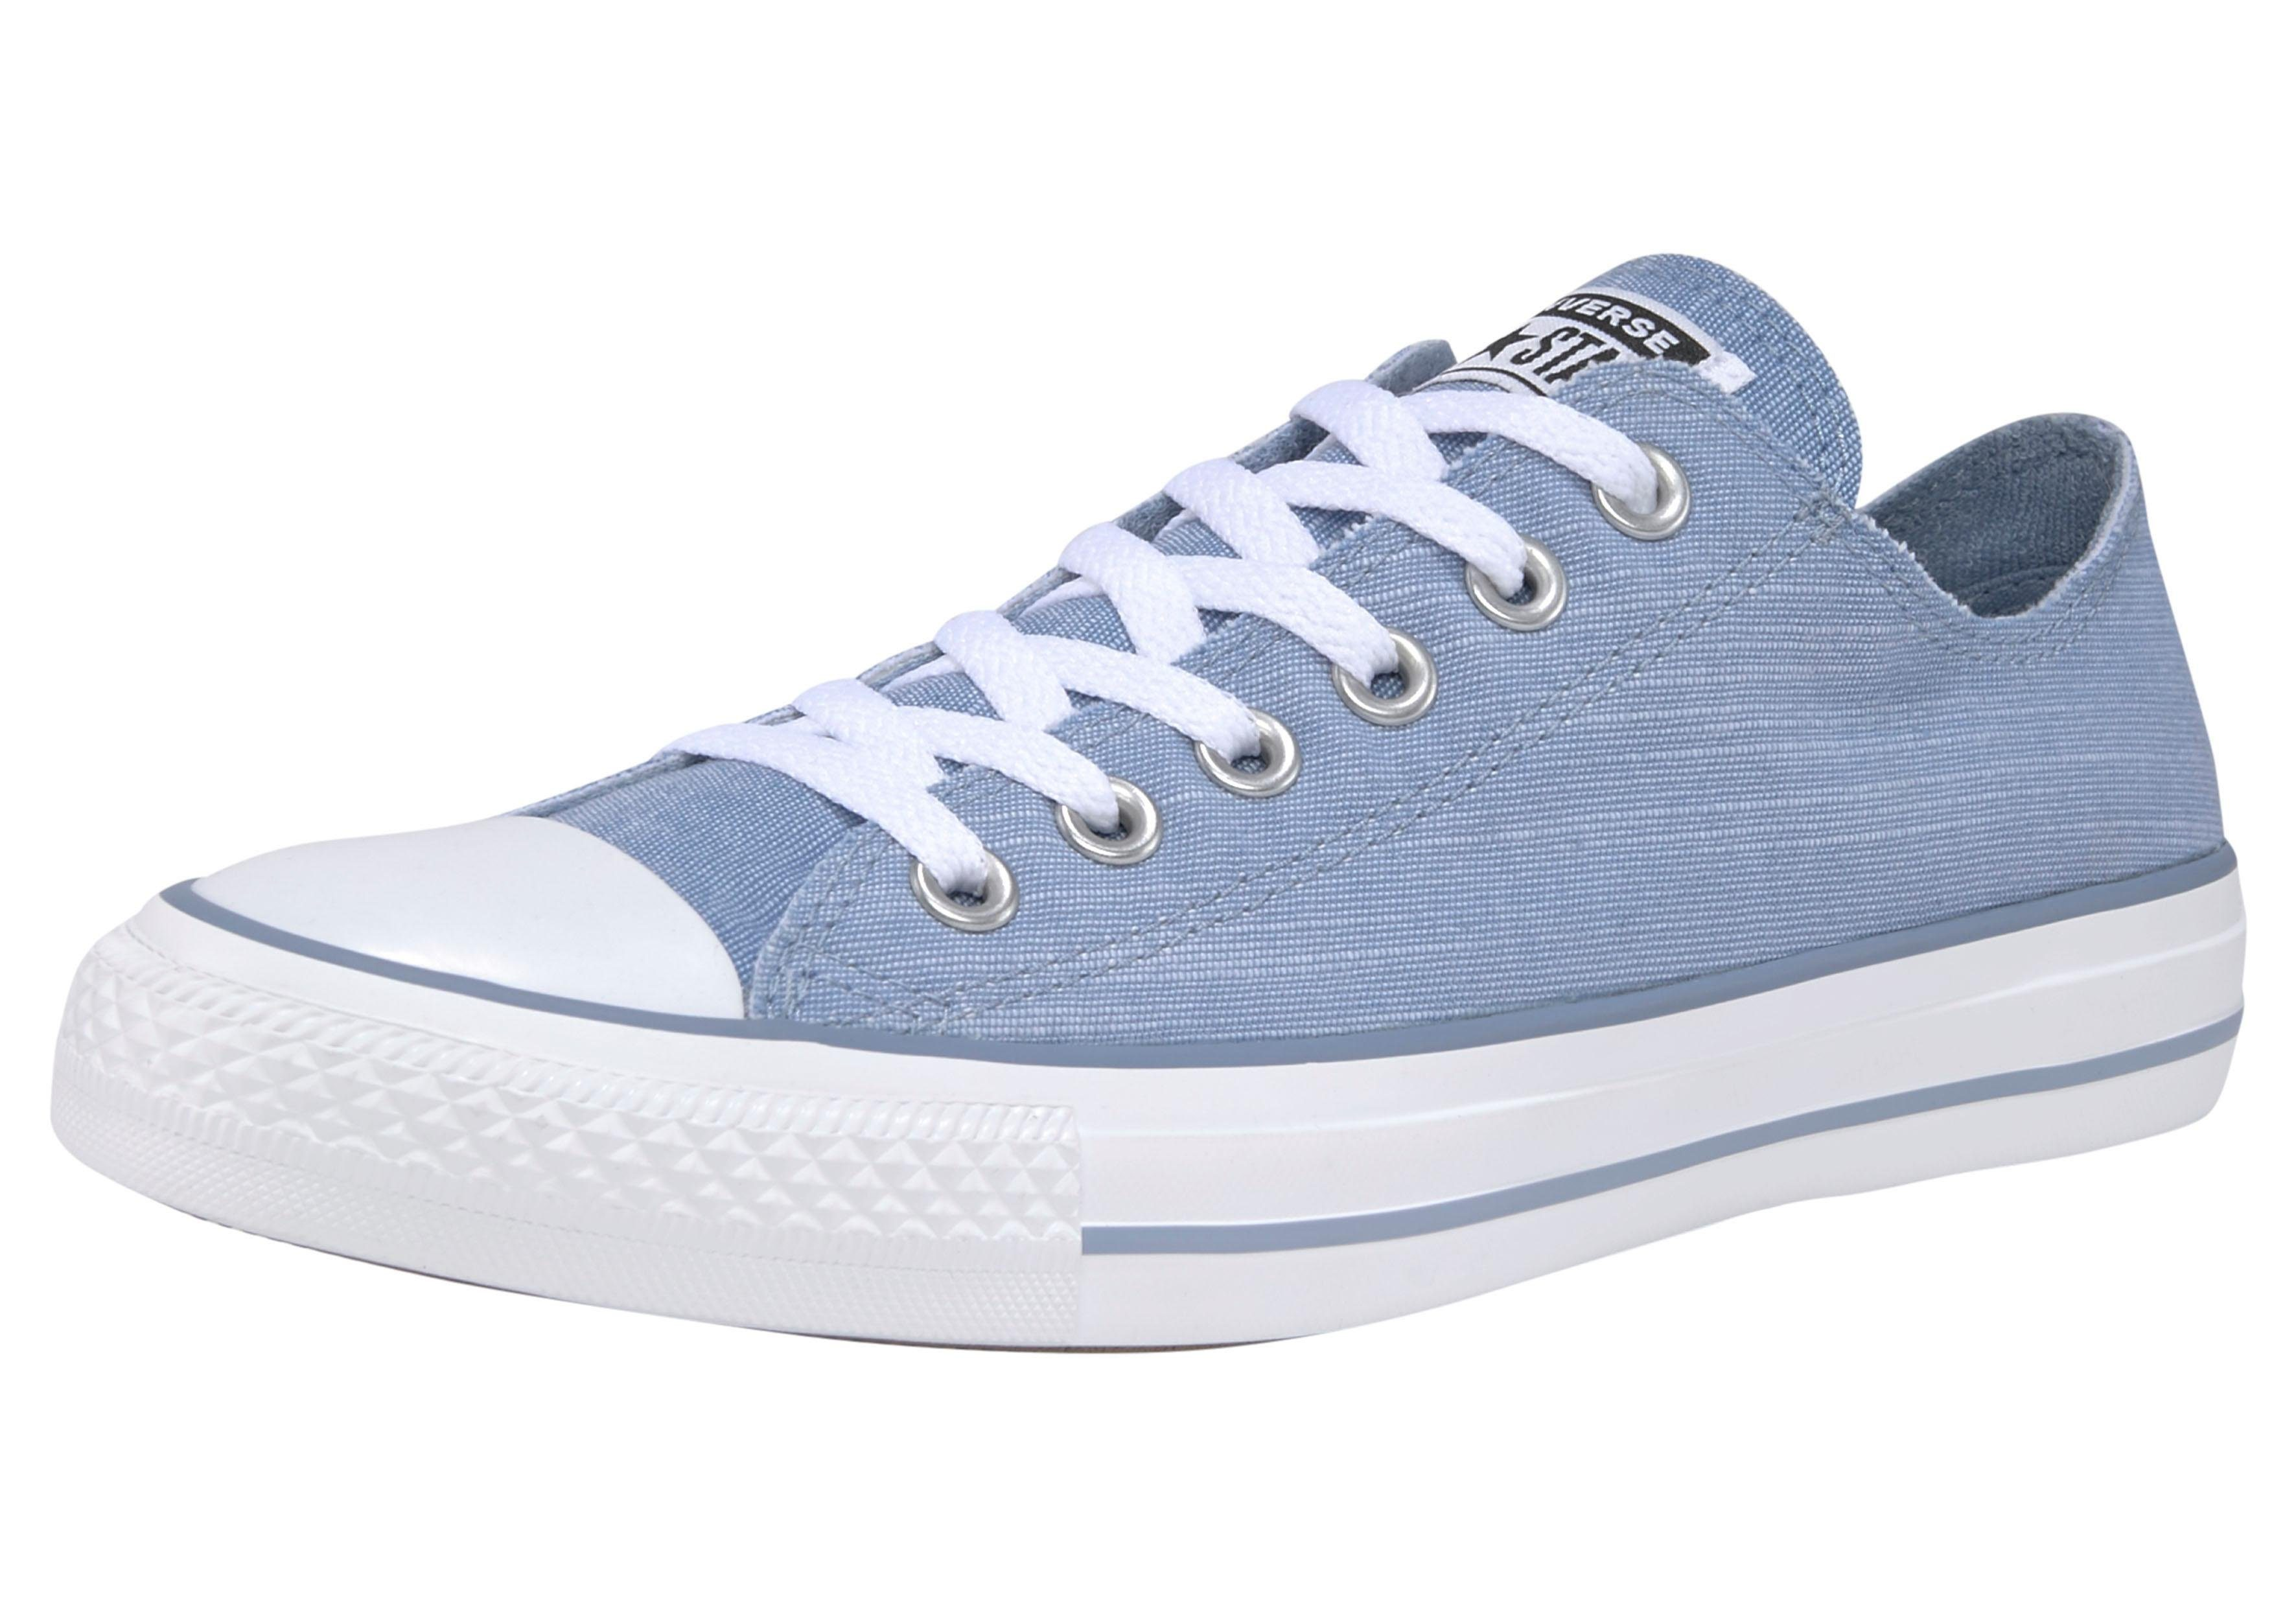 Converse »Chuck Taylor All Star Ox Frayed Lines« Sneaker online kaufen | OTTO